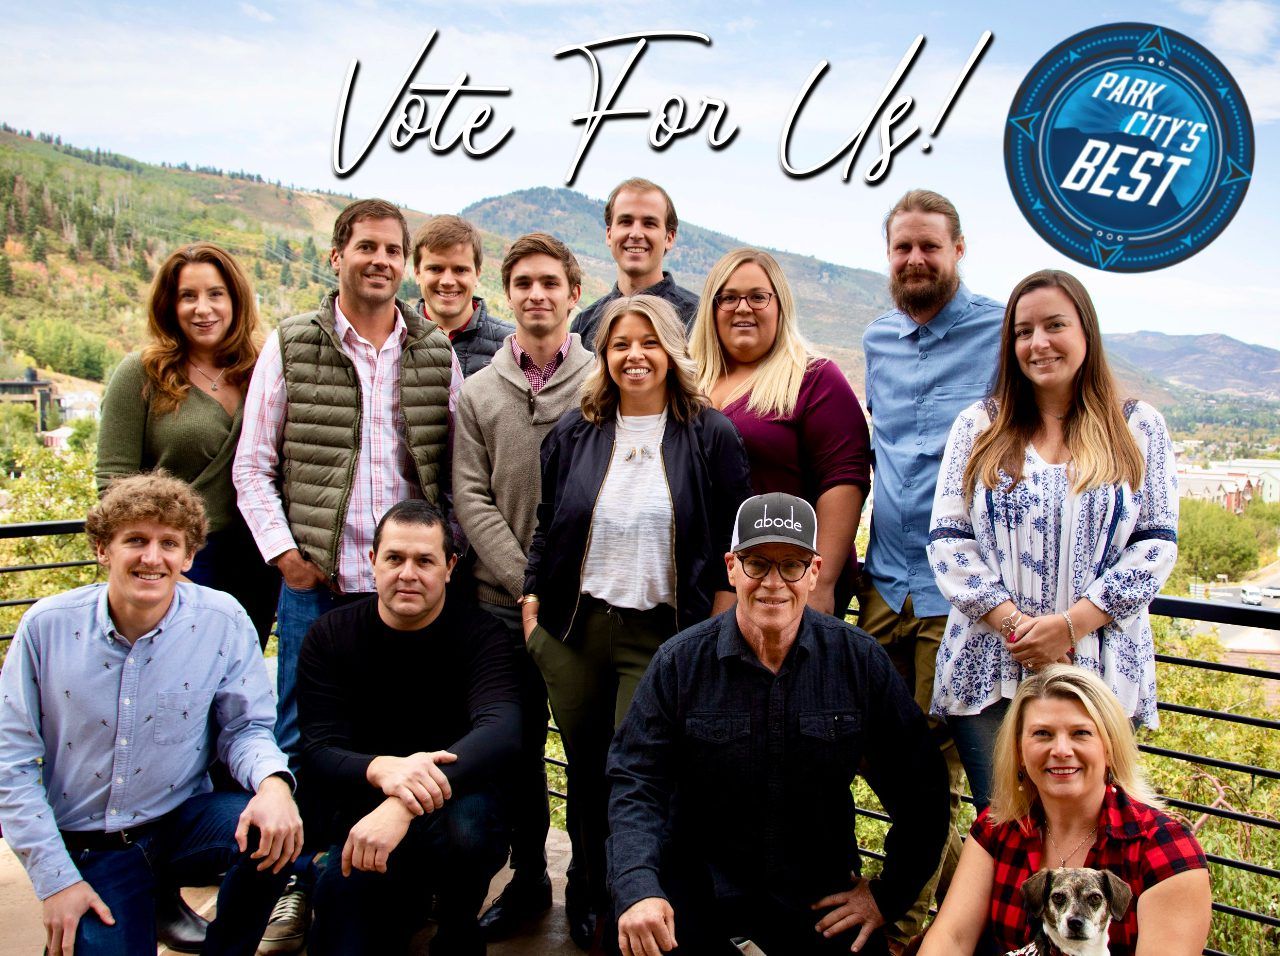 Vote for Abode Luxury Rentals as Park City's Best!